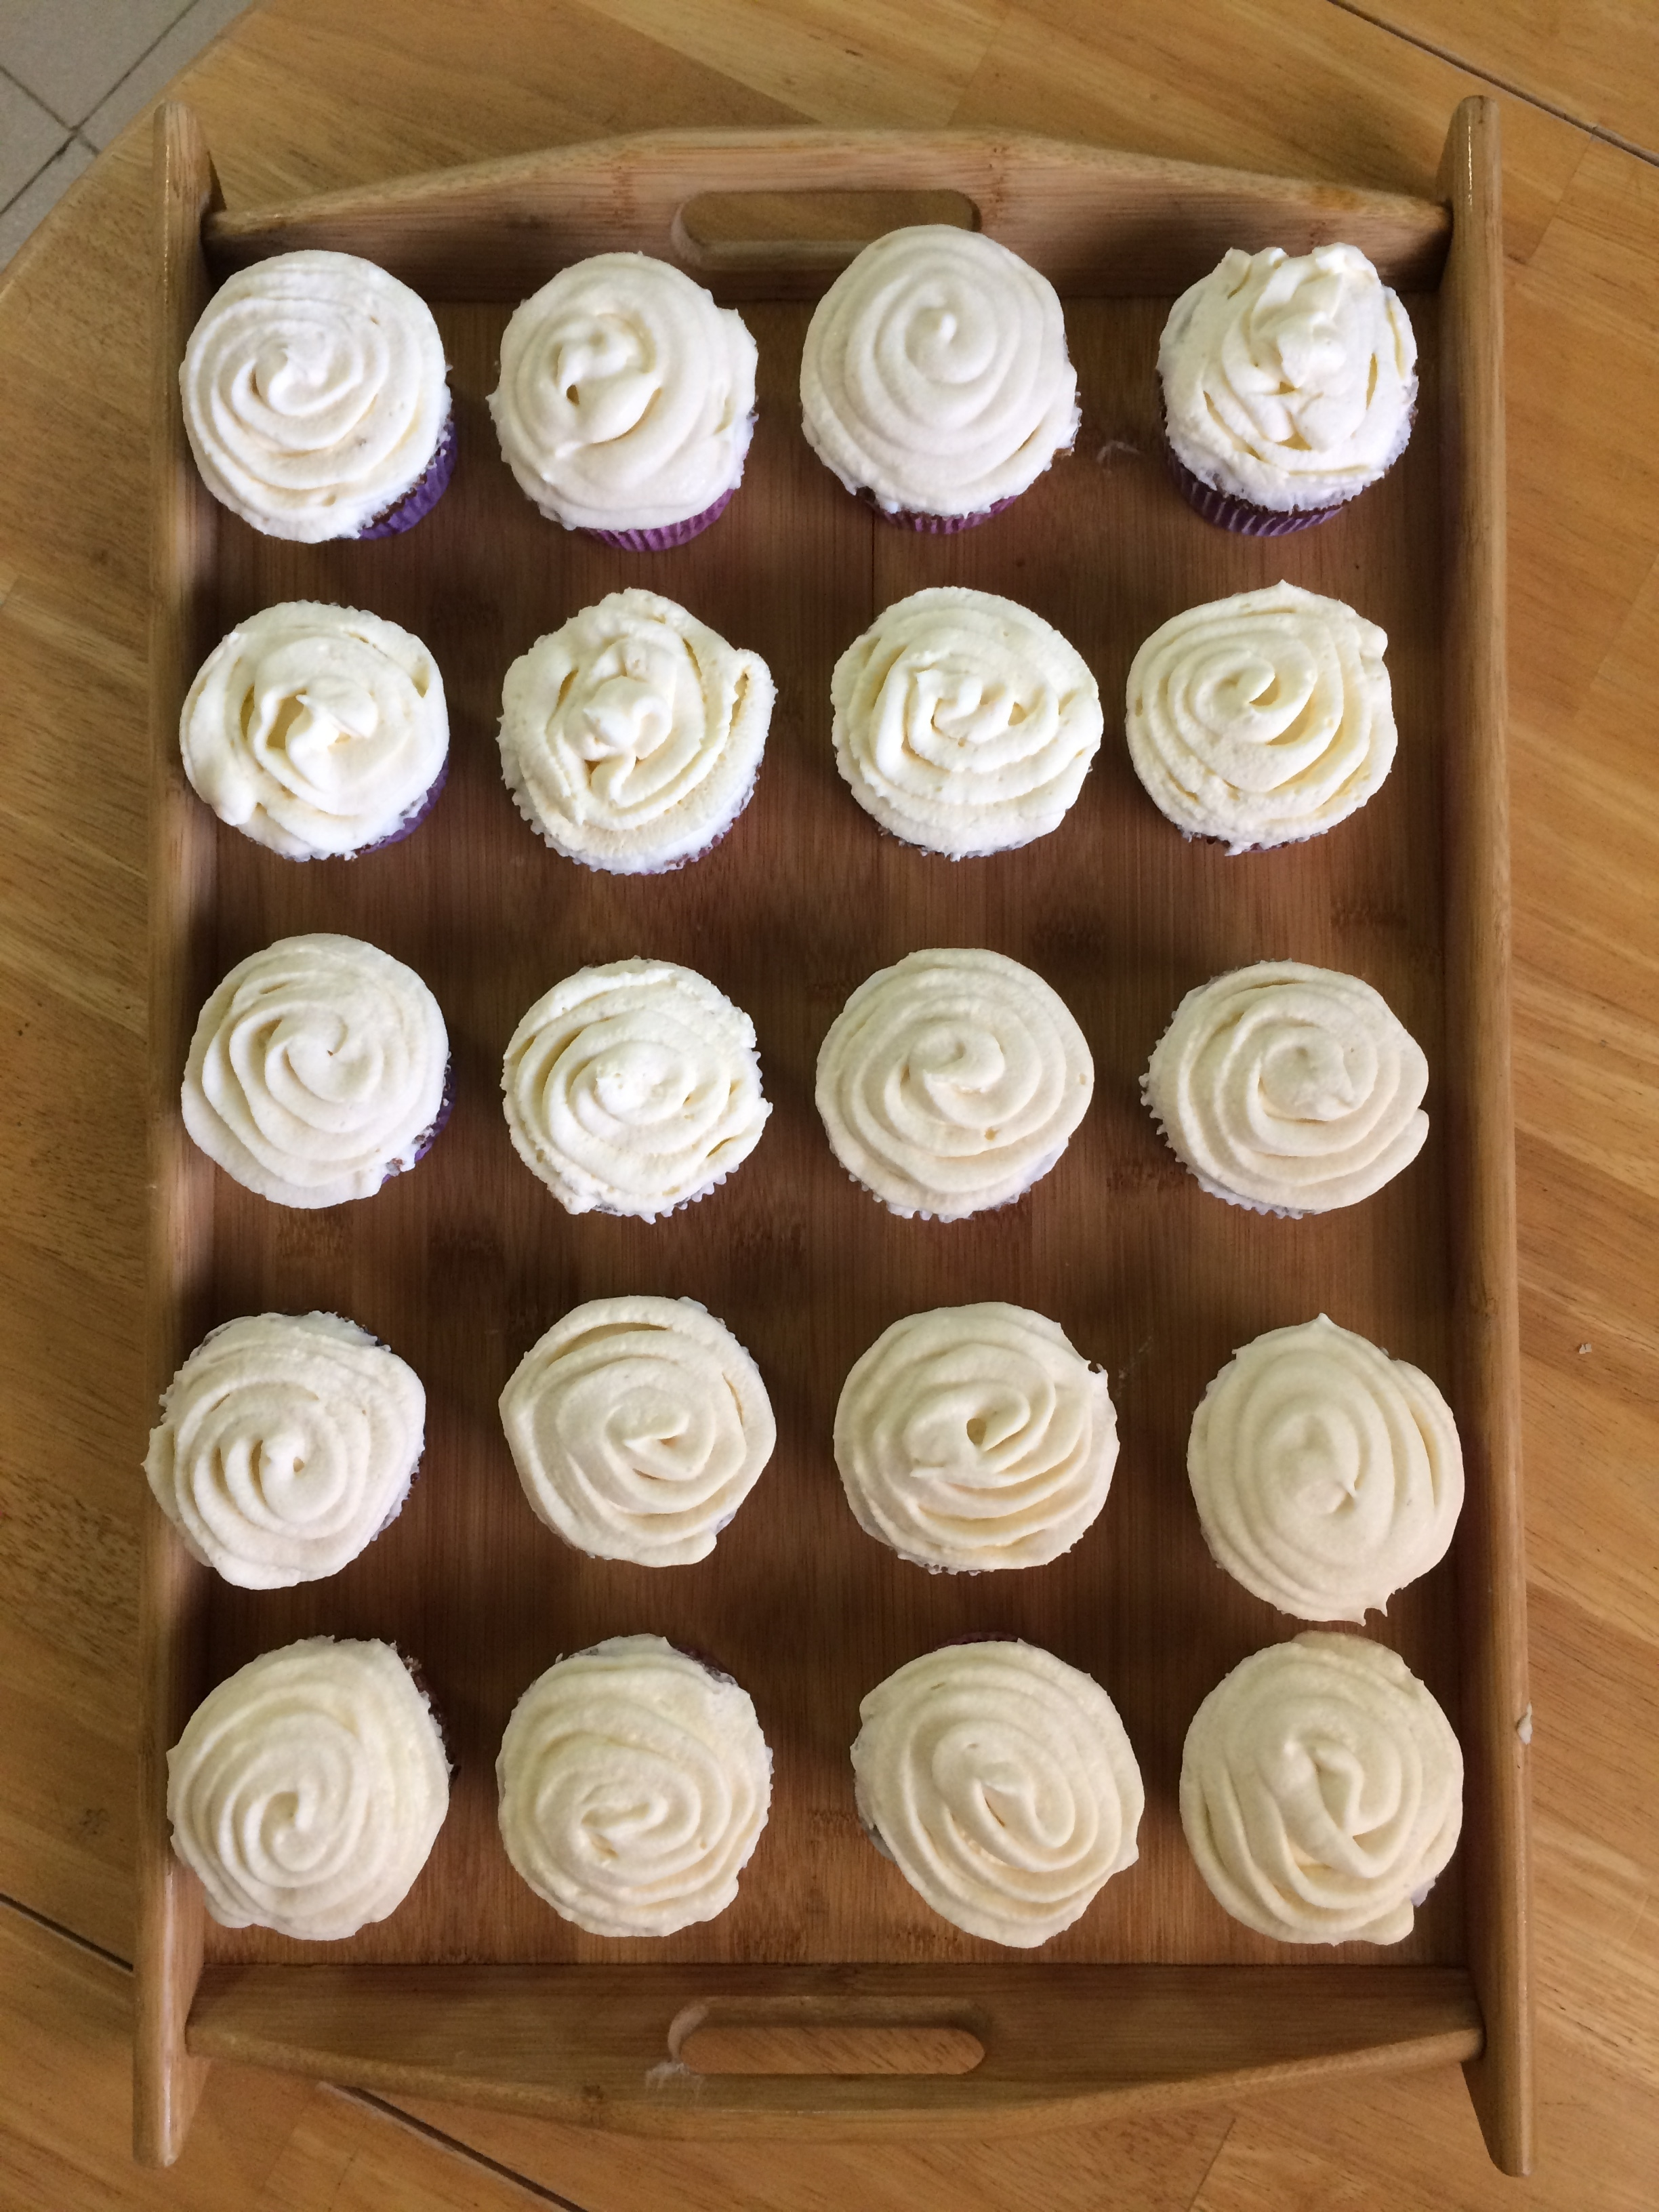 I'm learning the ropes of baking in Cuba with these butternut squash cupcakes with cream cheese frosting.